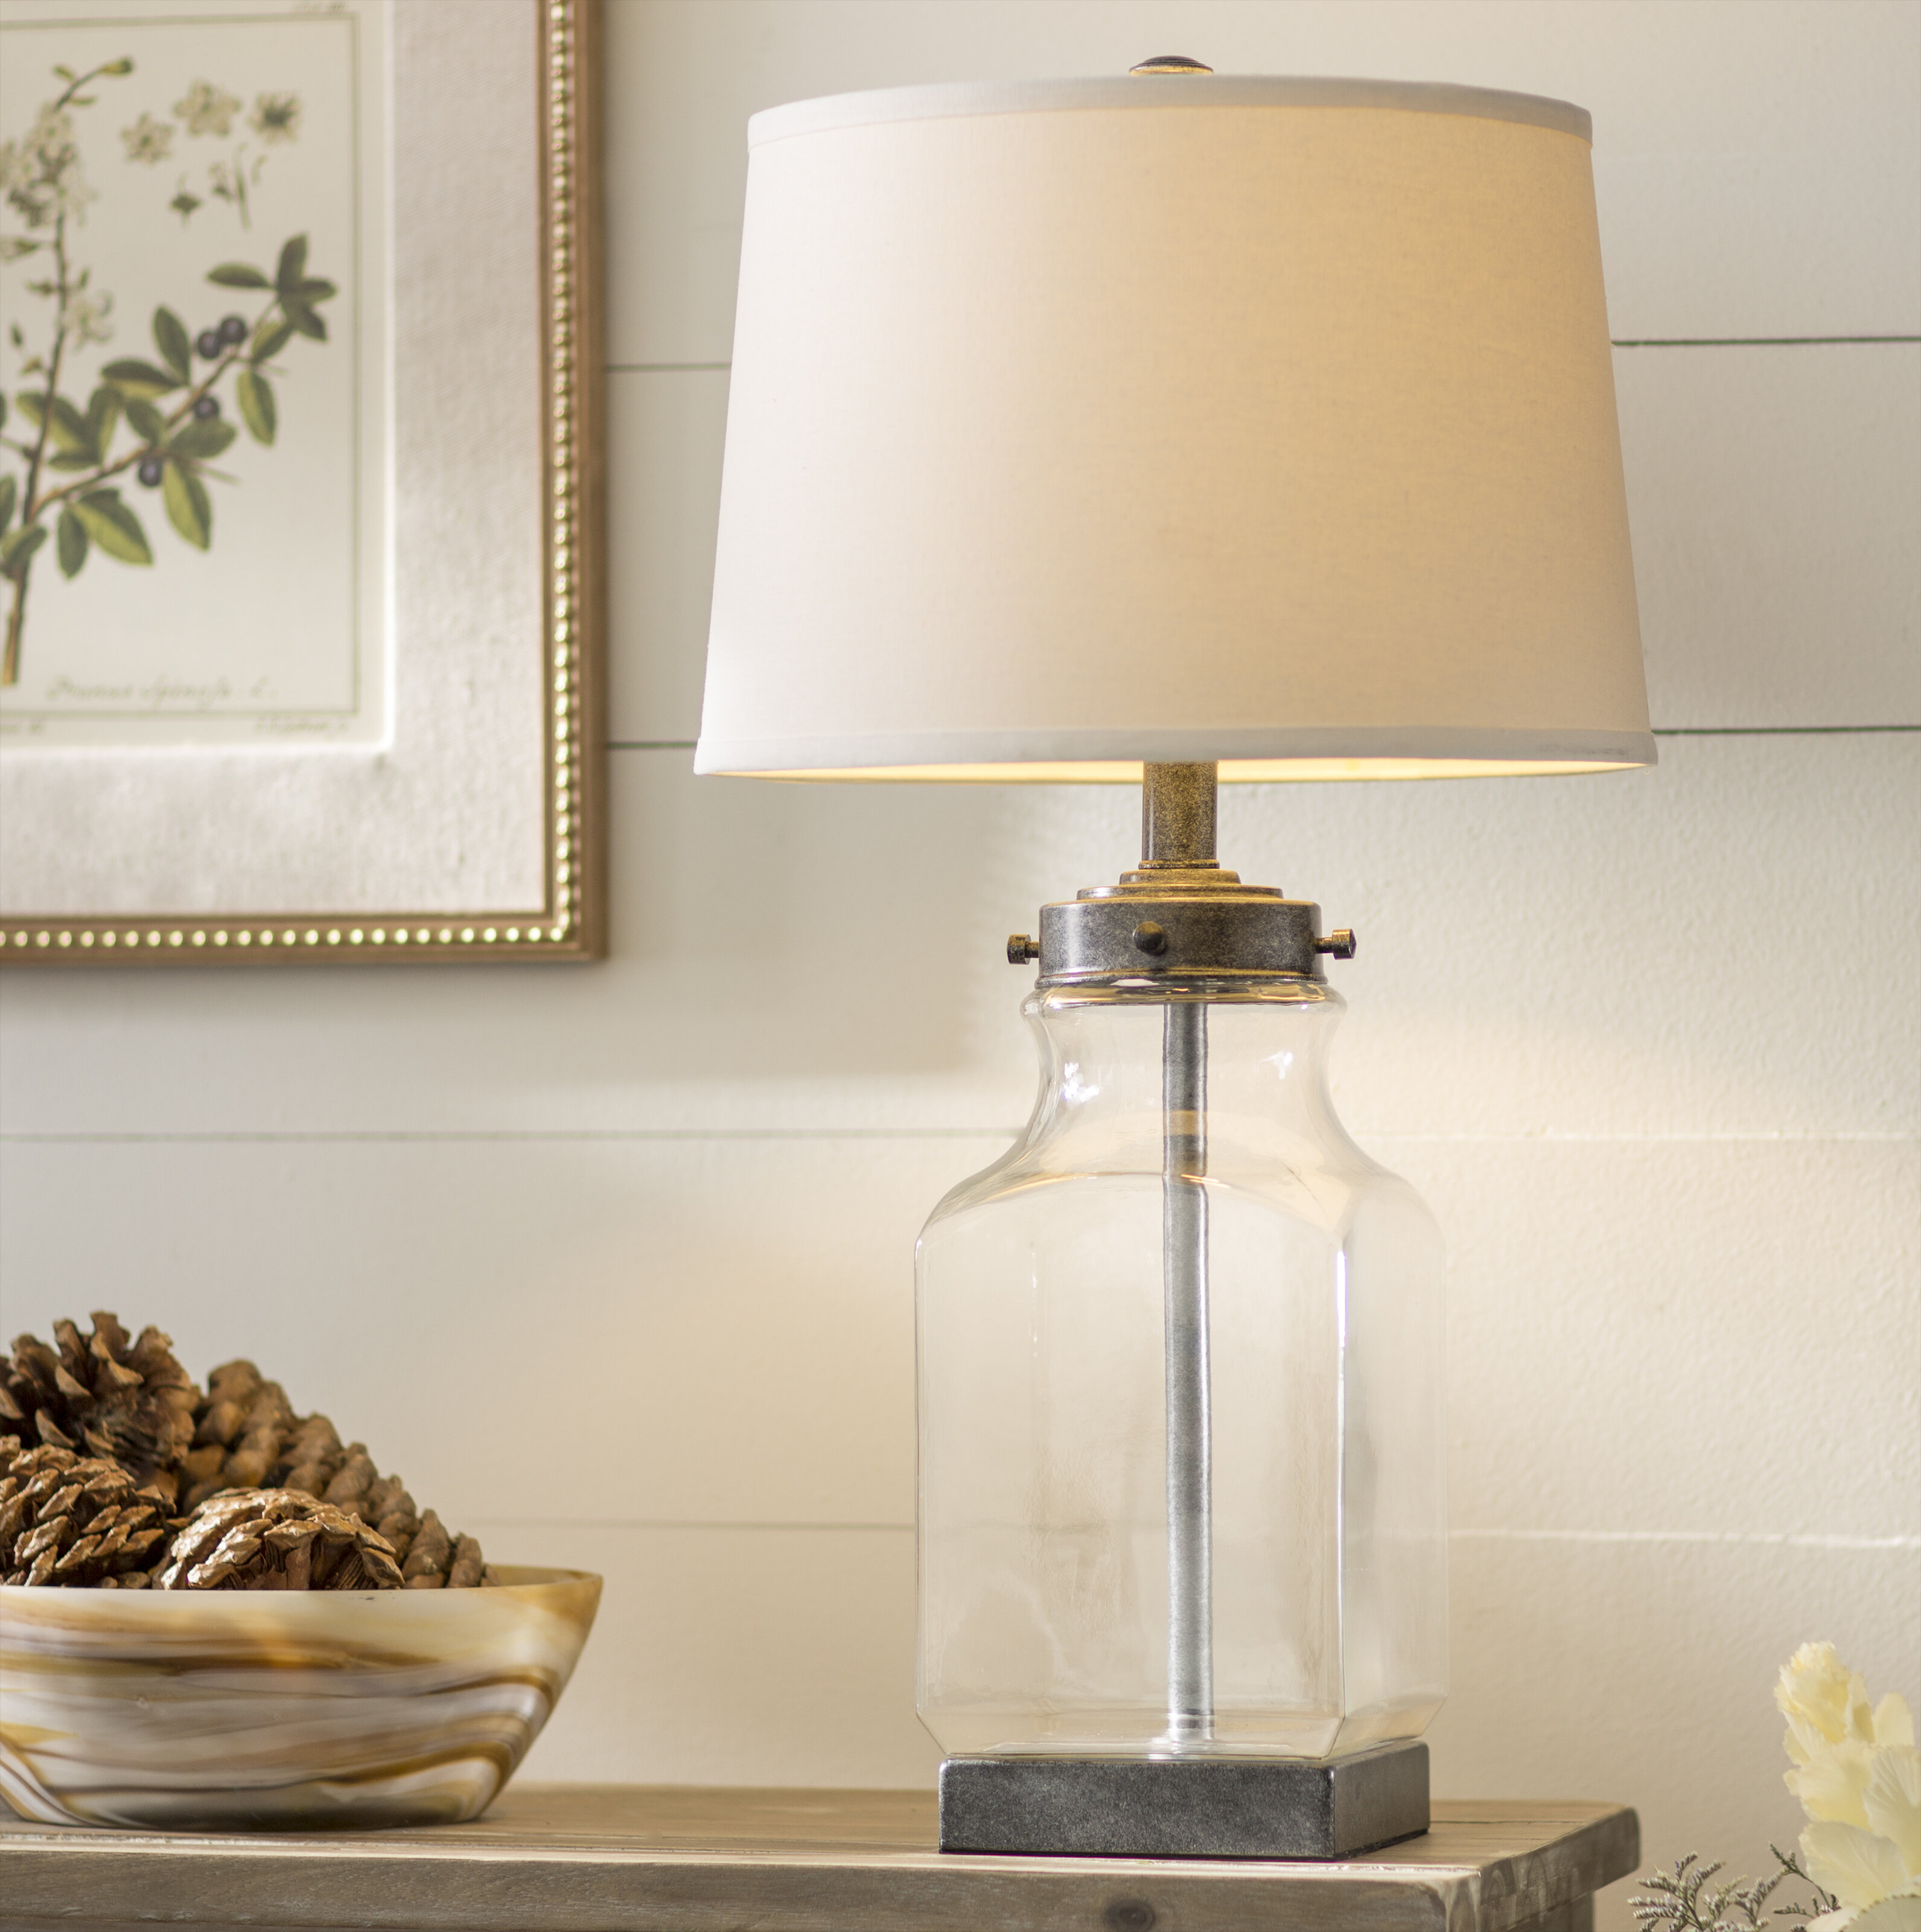 How to arrange the lamps